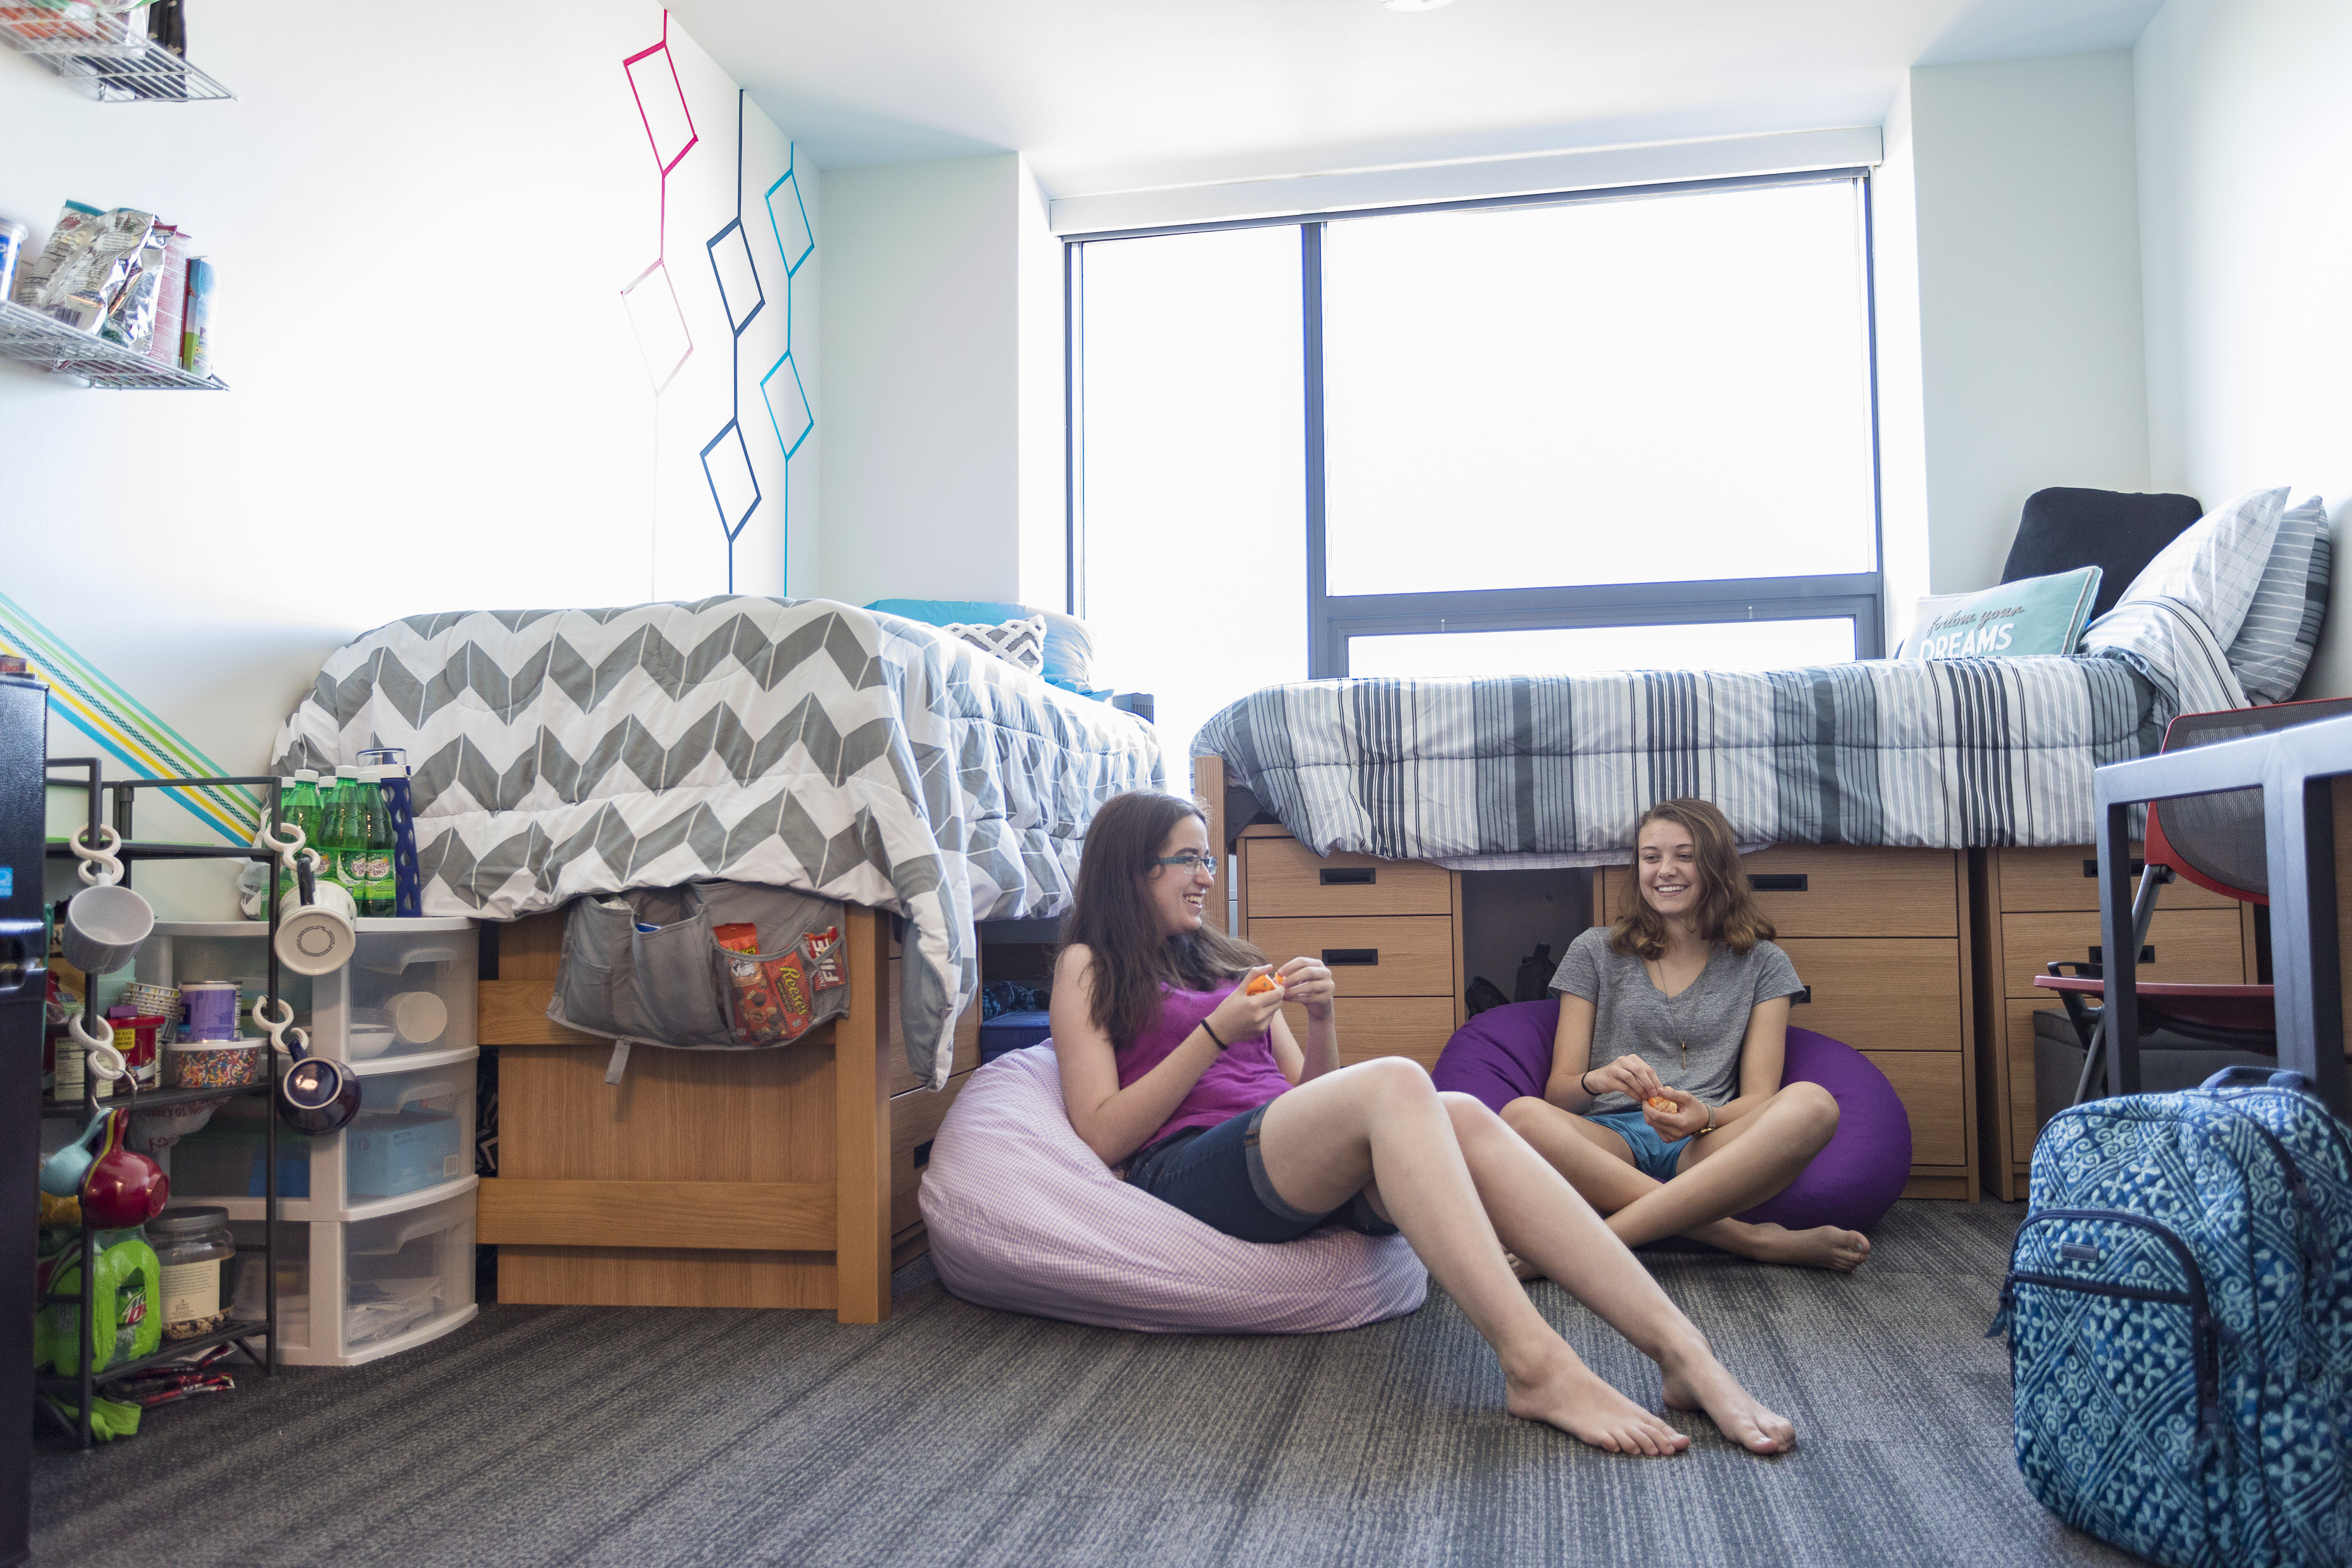 Students sitting on floor in bean bag chairs.